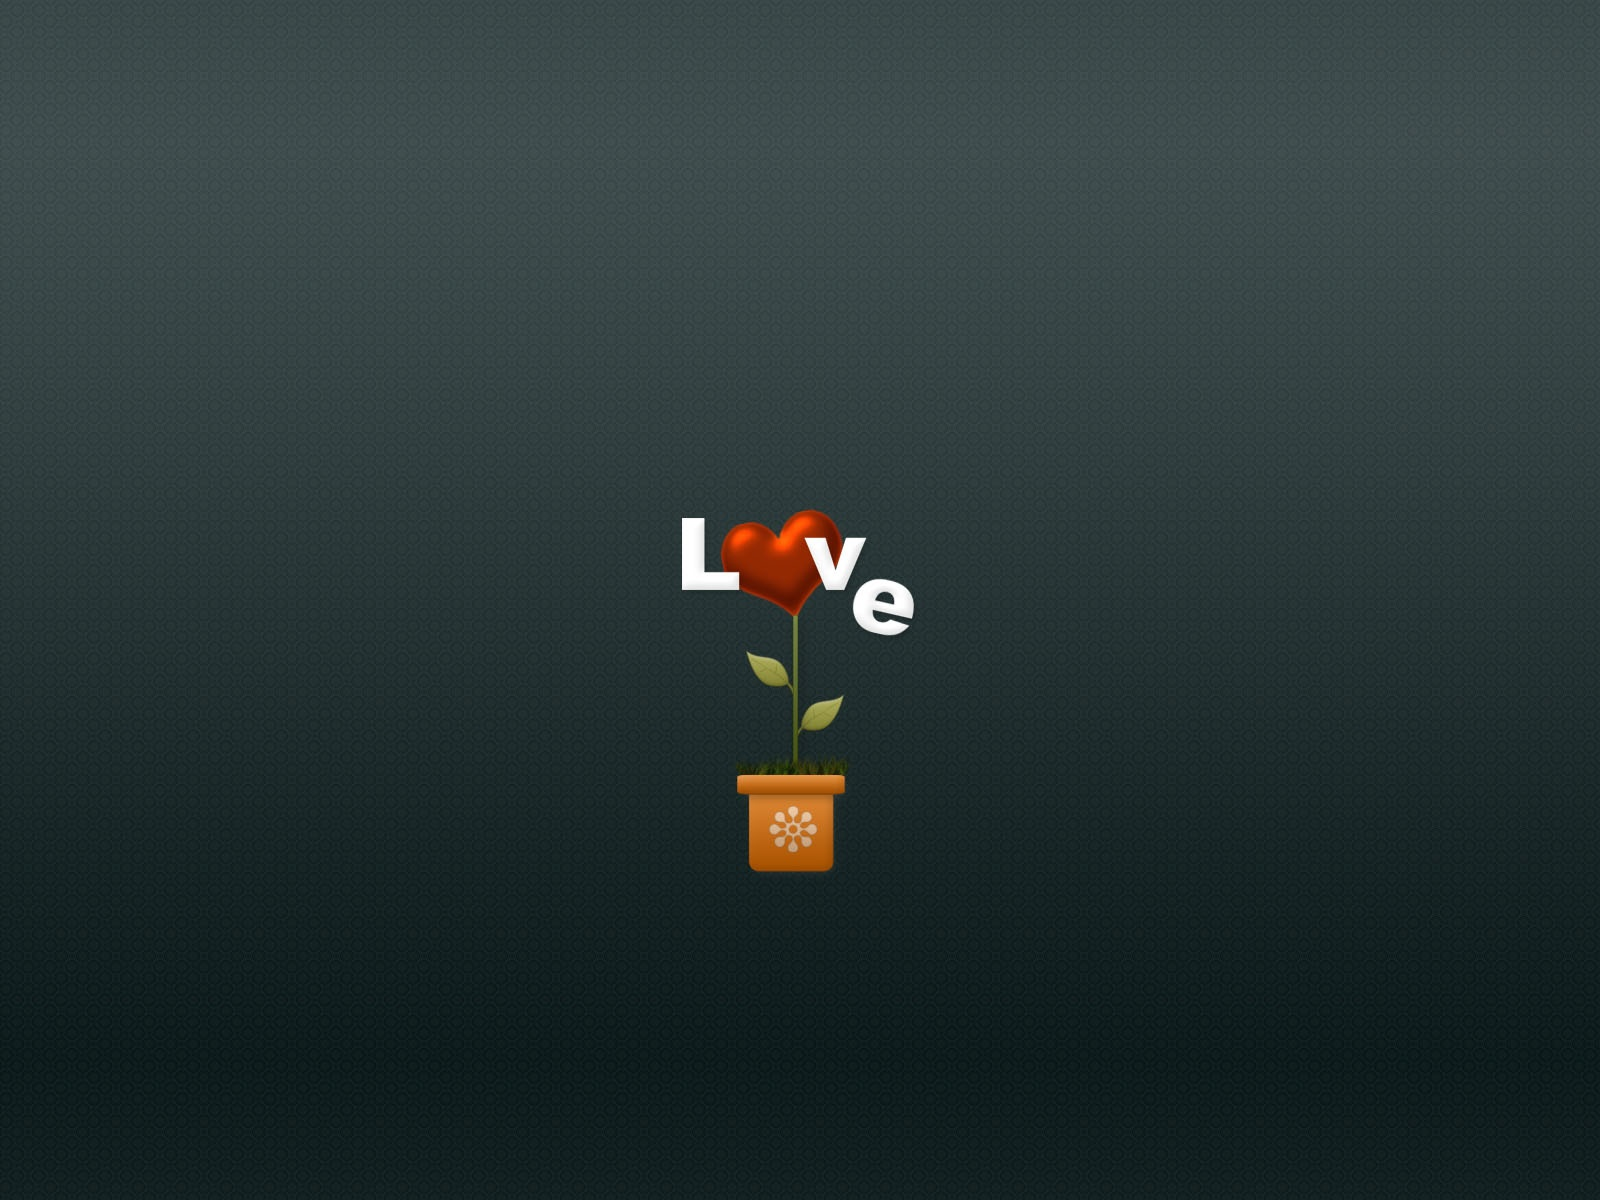 click to free download the wallpaper--Lovely Wallpaper, a Love Flower, Heart is Blooming